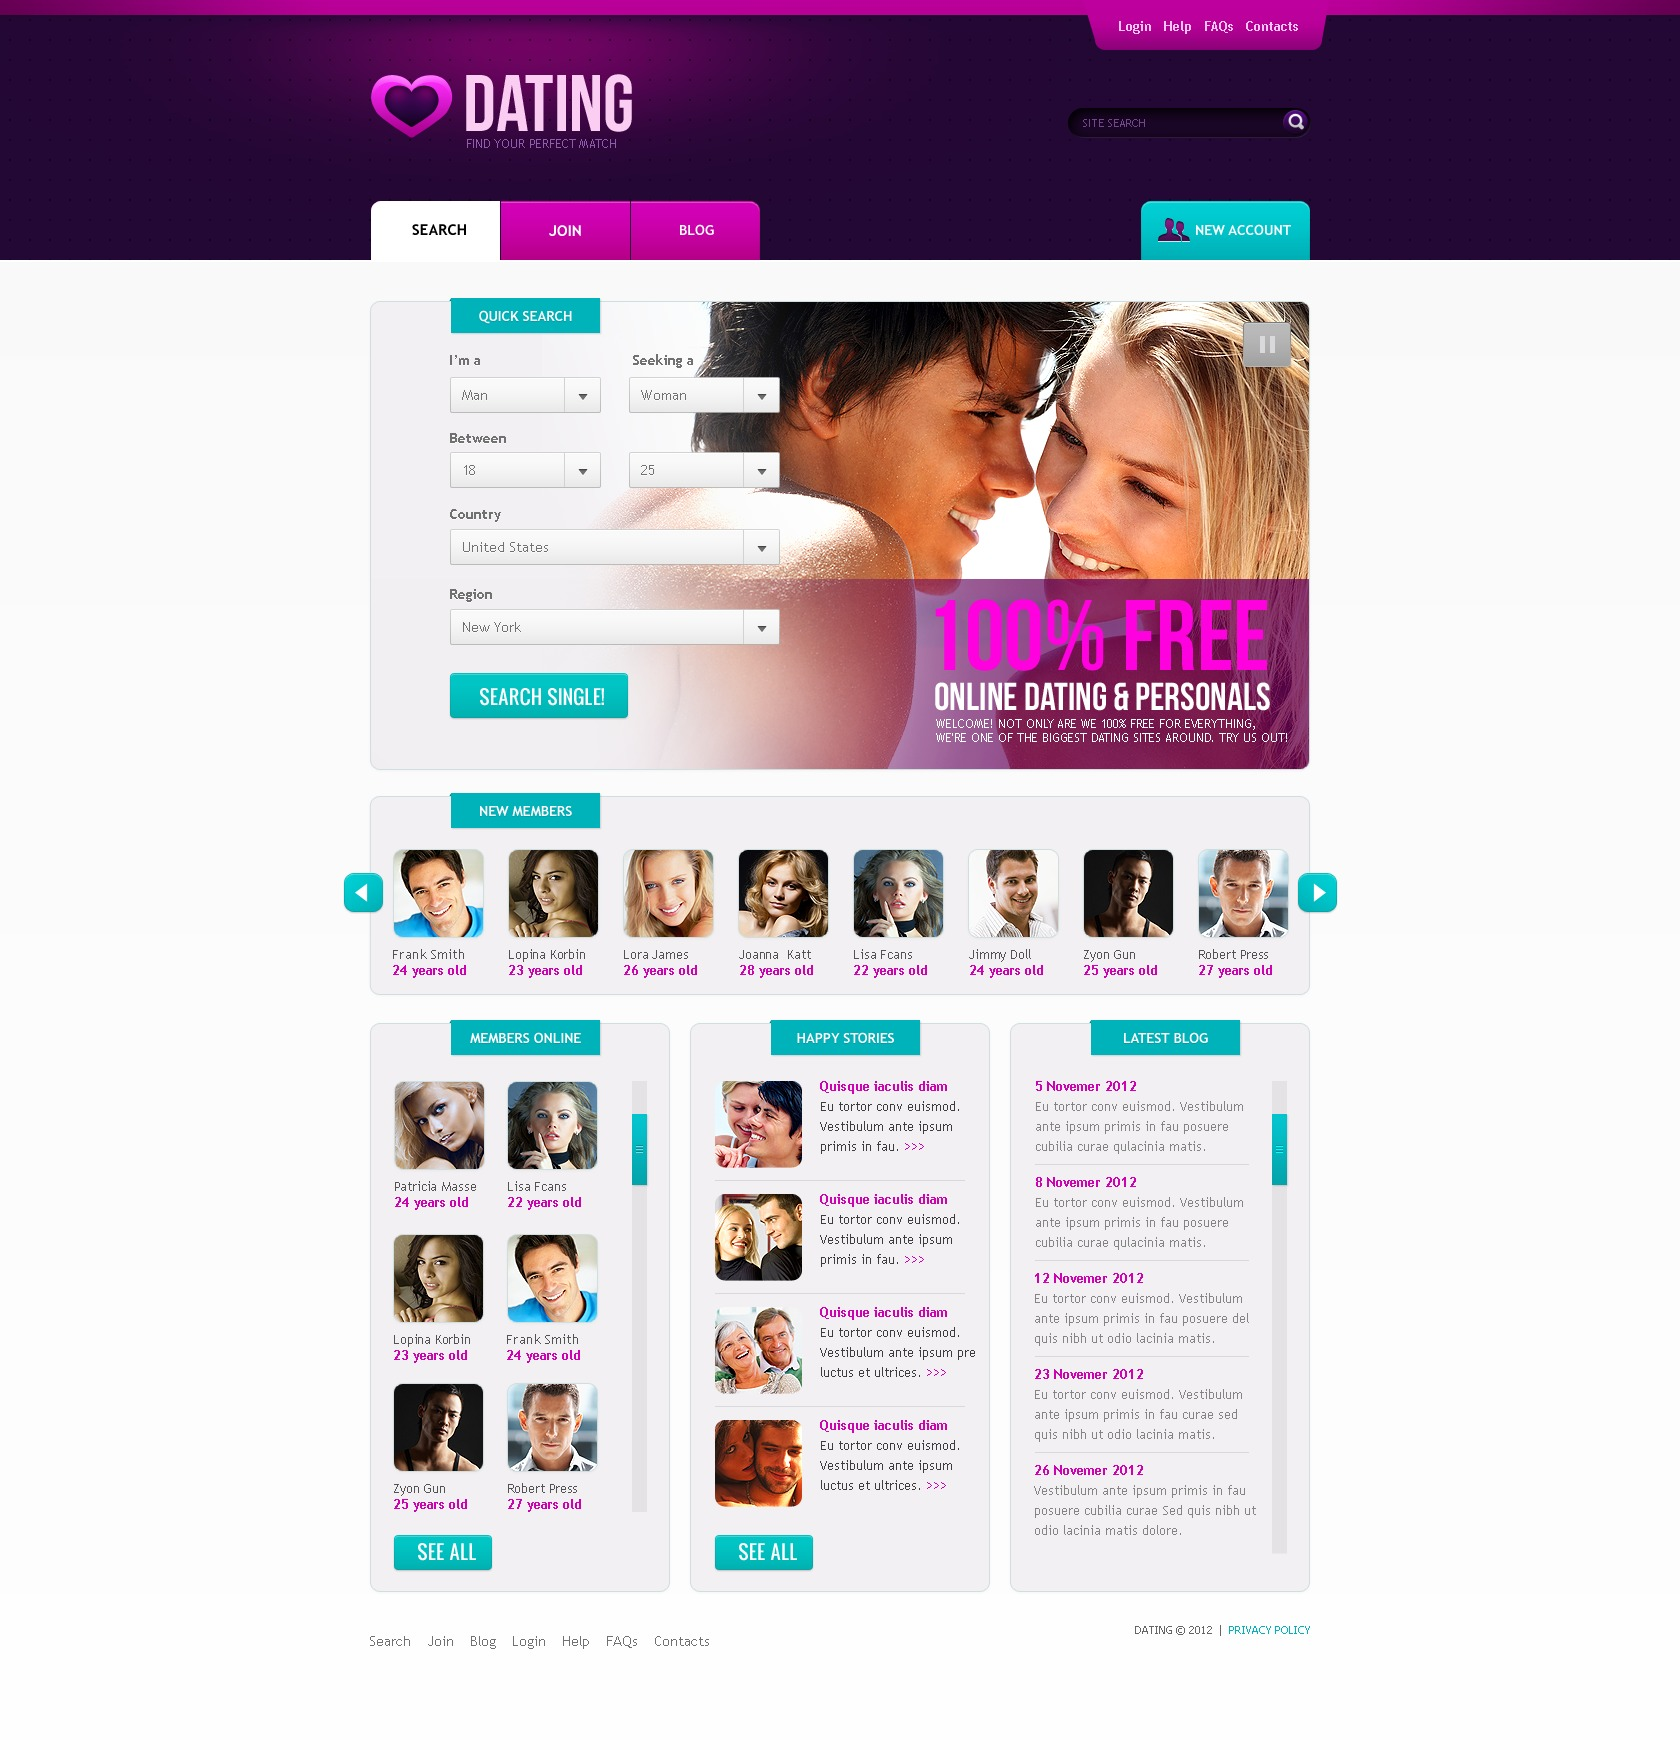 Dating website for 25 year olds